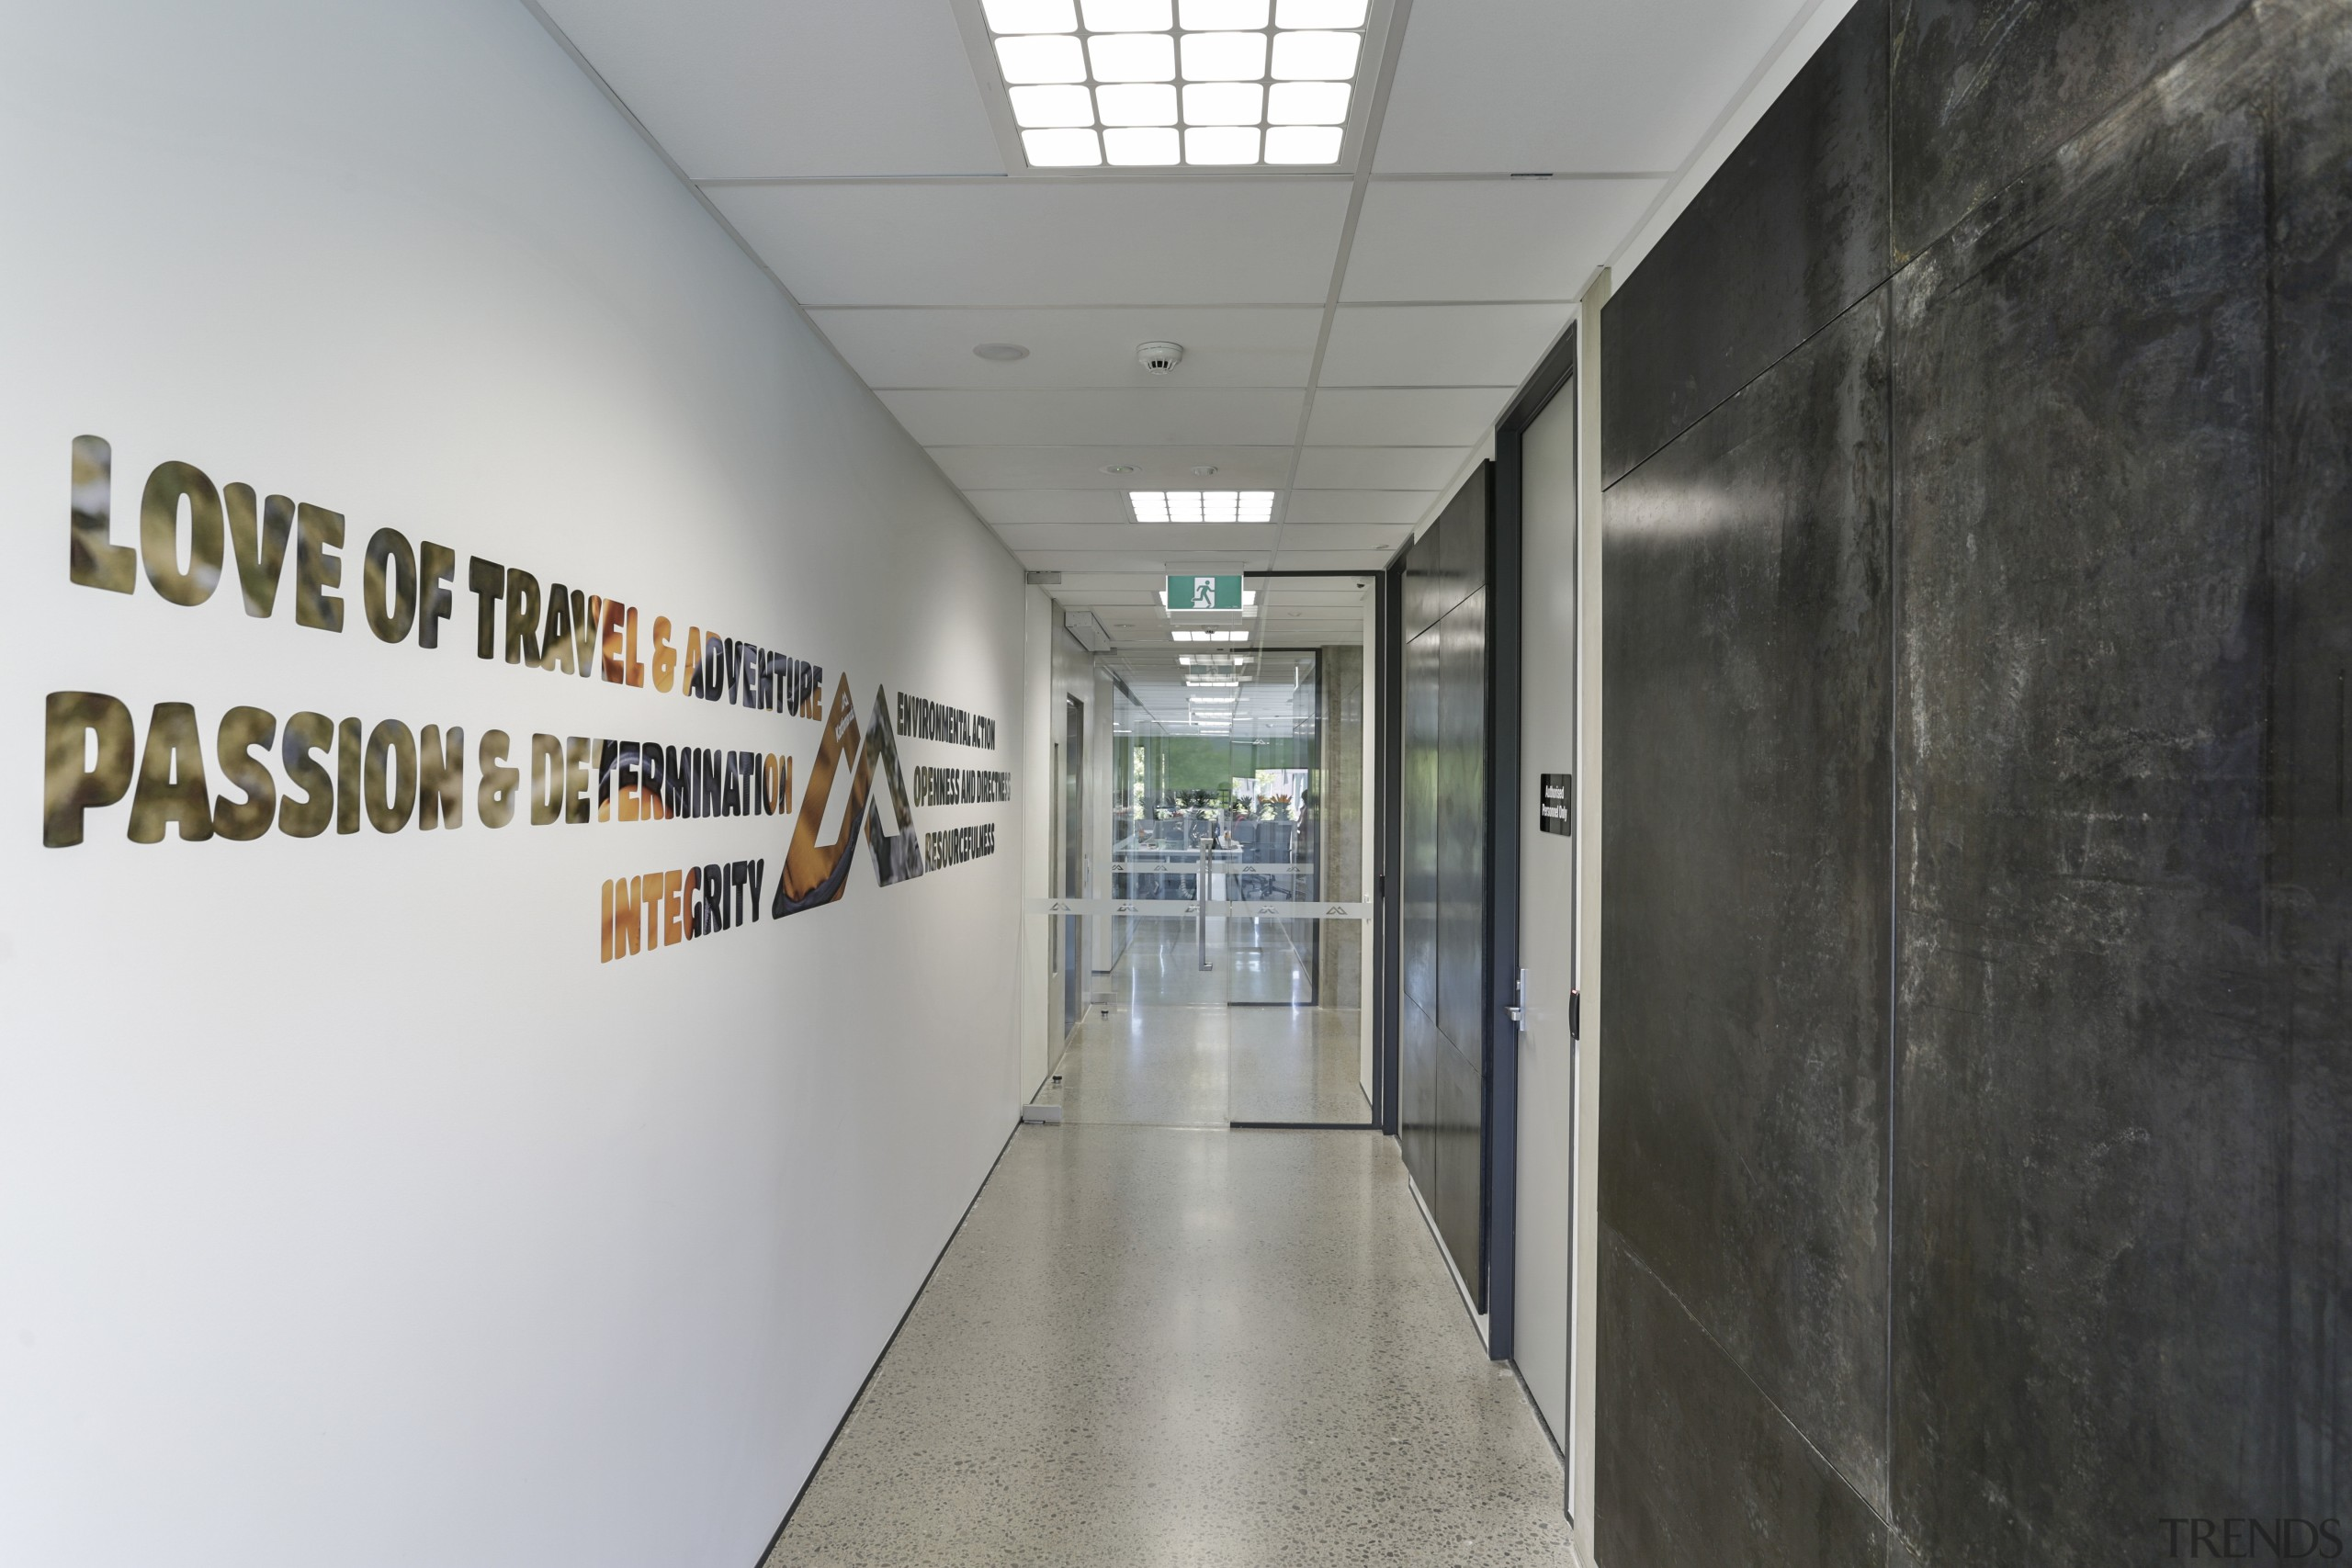 Waxed steel walls and empowering slogans feature in gray, black